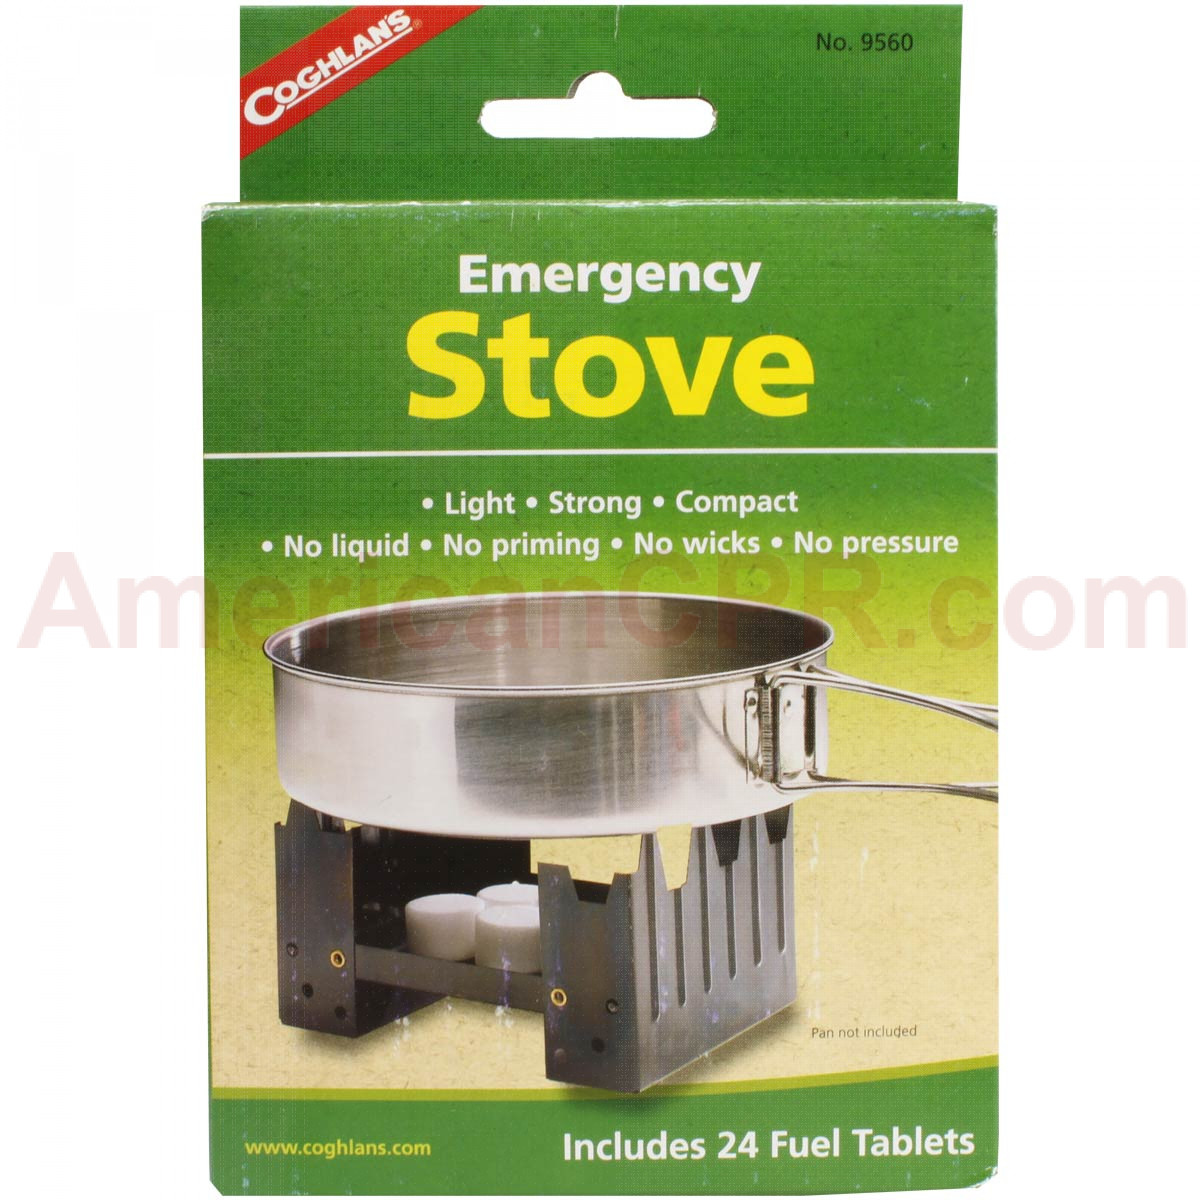 Portable Stove with 8 Fuel Tablets - Mayday